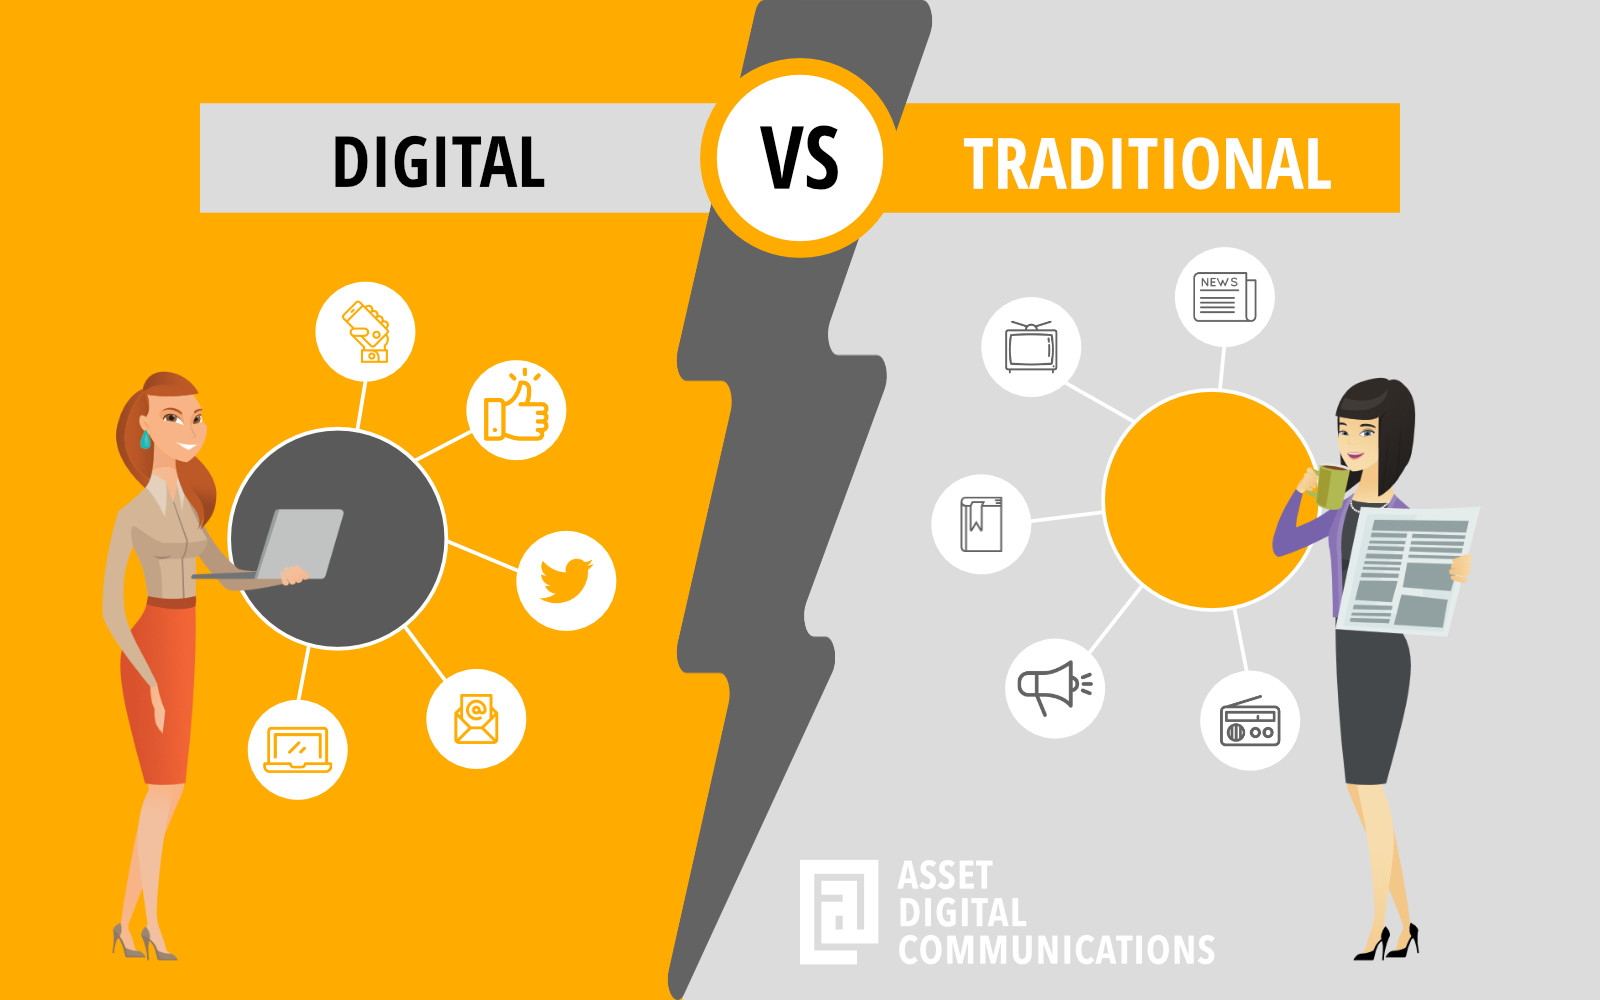 Let understand the difference between traditional style of marketing and digital style of marketing